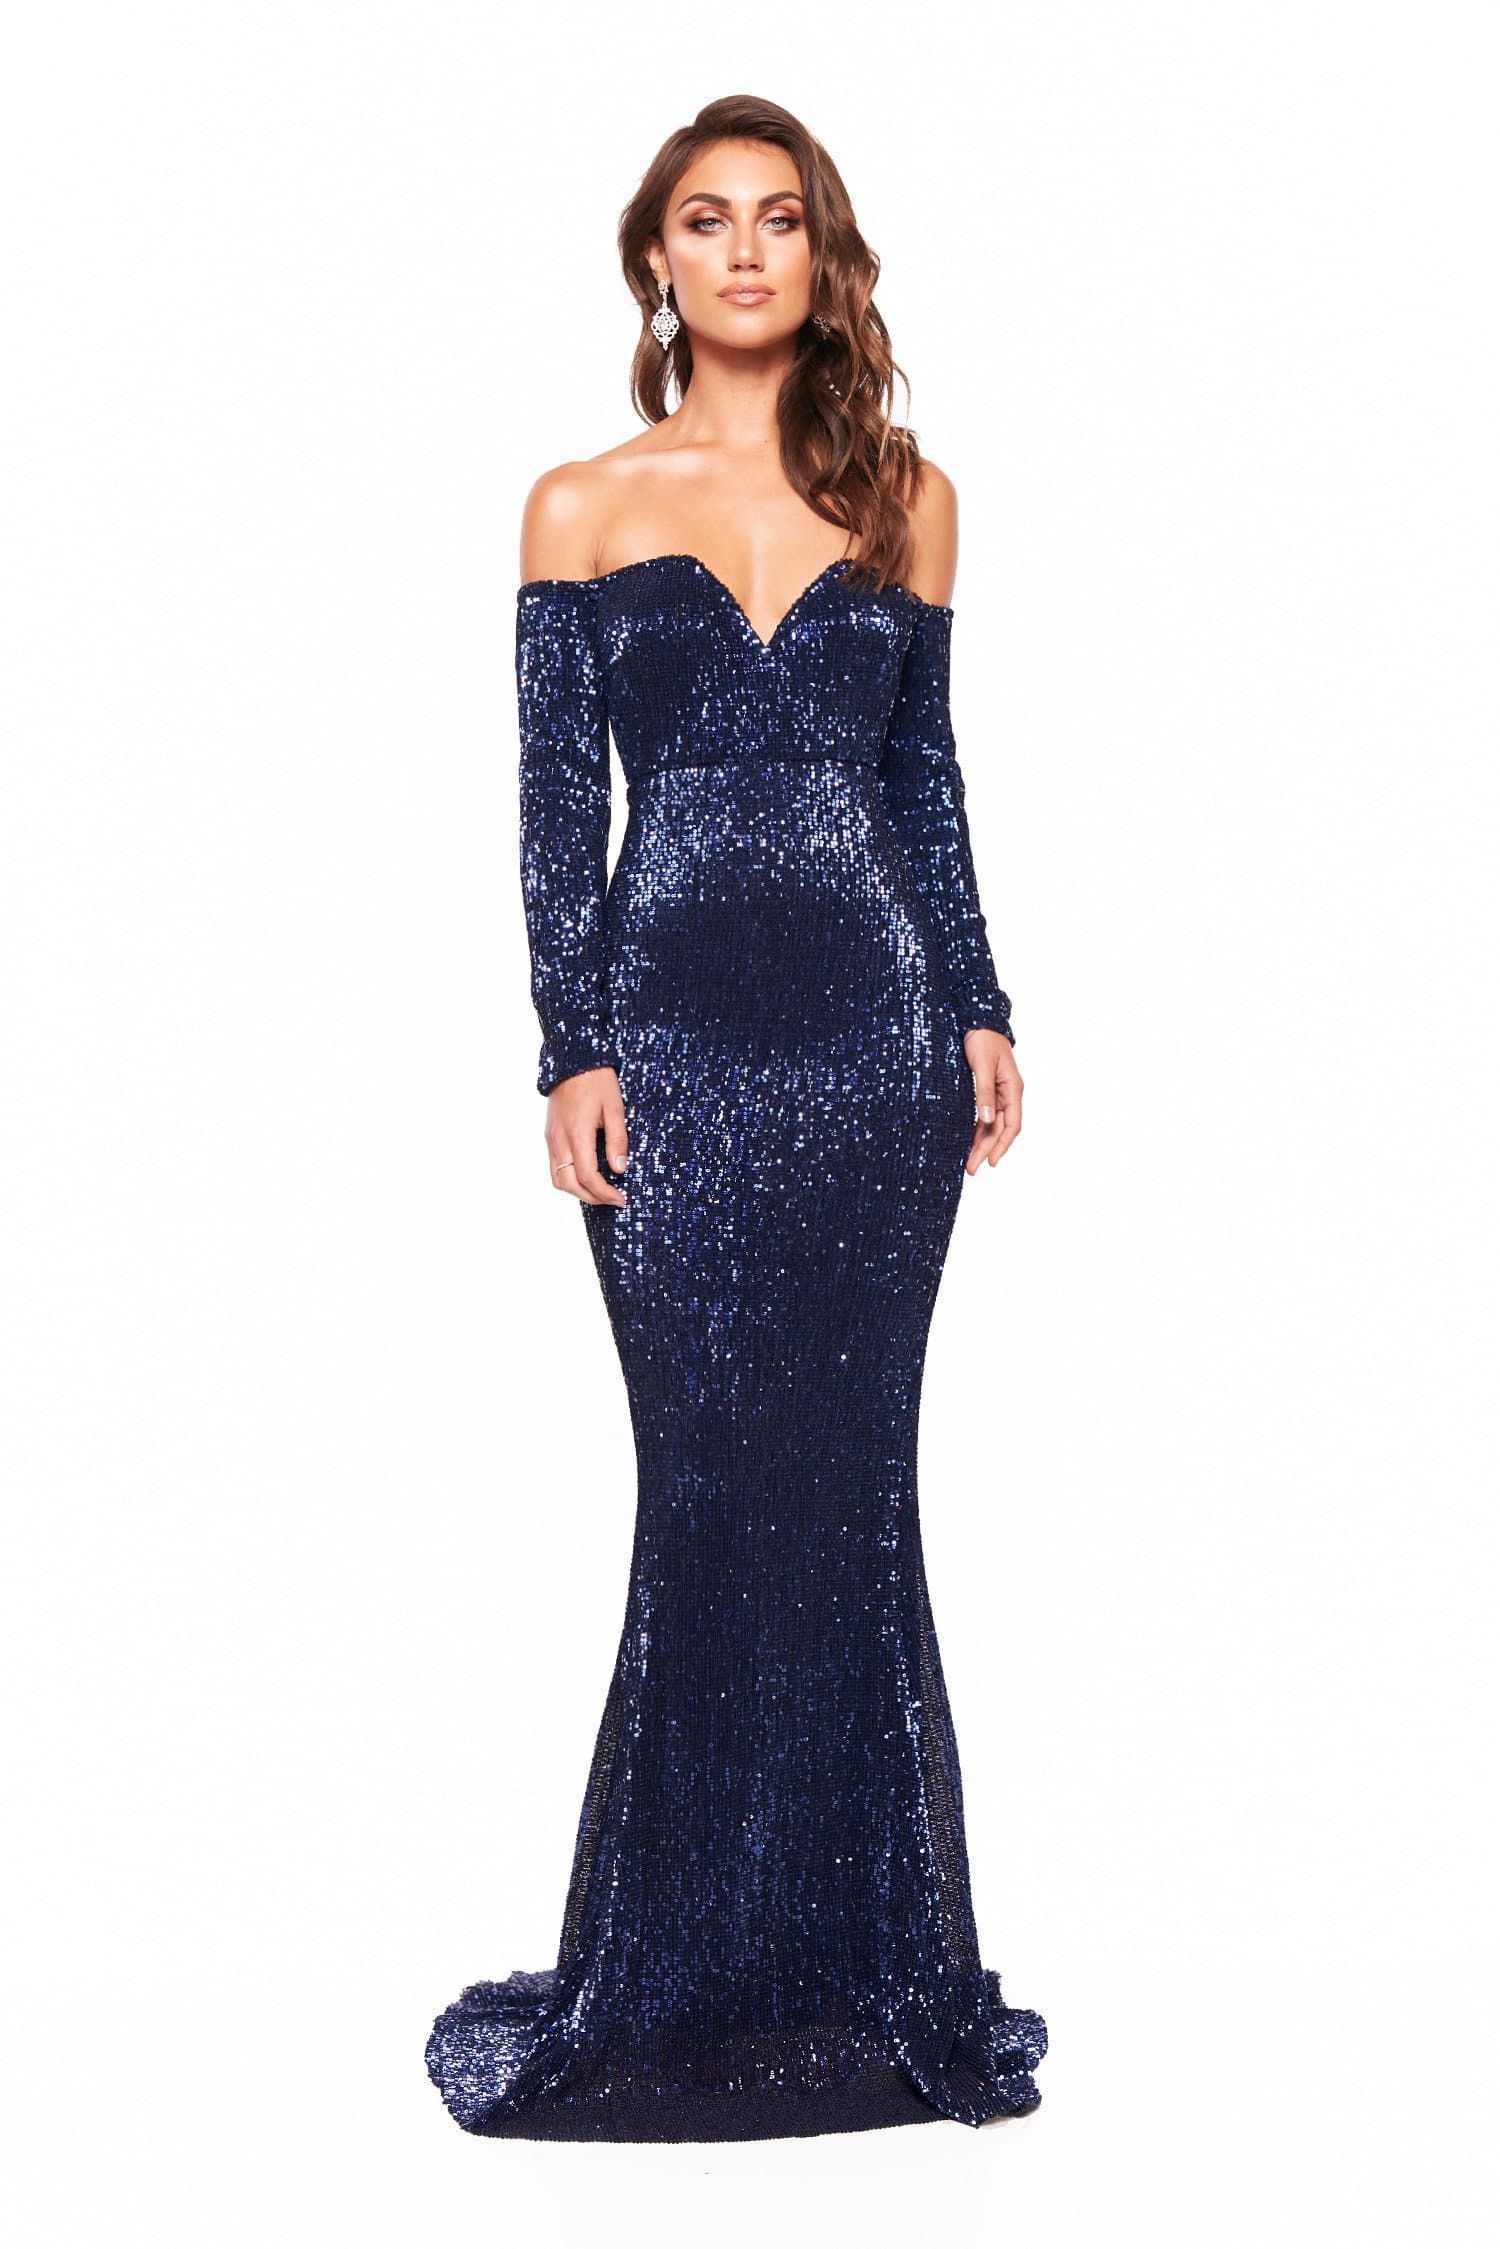 7260c4a9e6b A N Marla - Shimmering Off Shoulder Gown with long Sleeves – A N ...